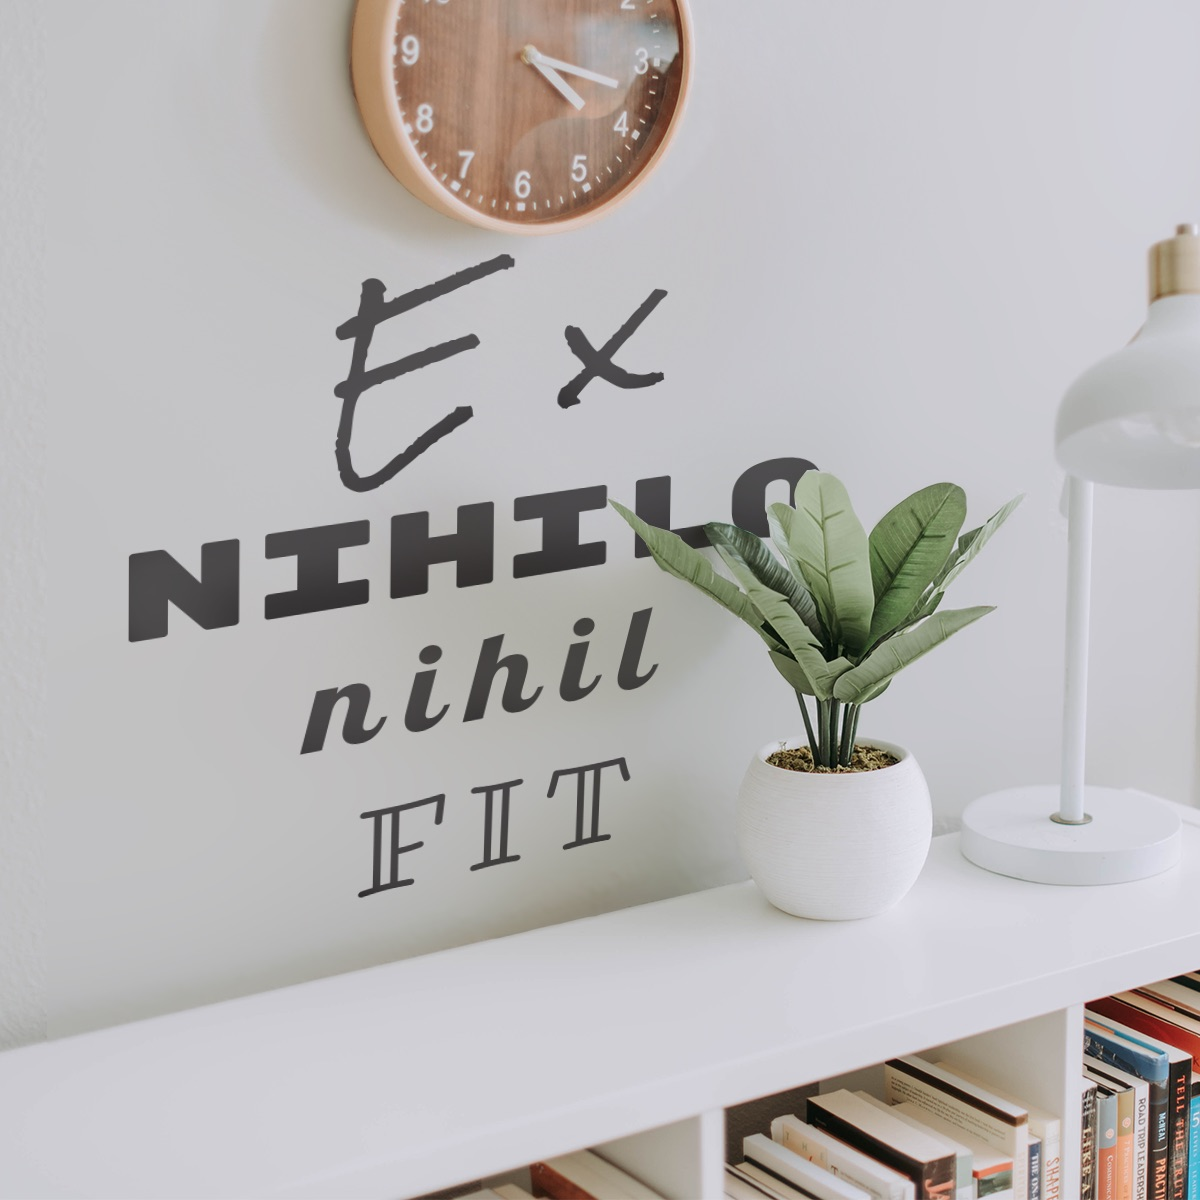 Decorative lettering wall sticker by CaptainText: Ex Nihilo Nihil Fit